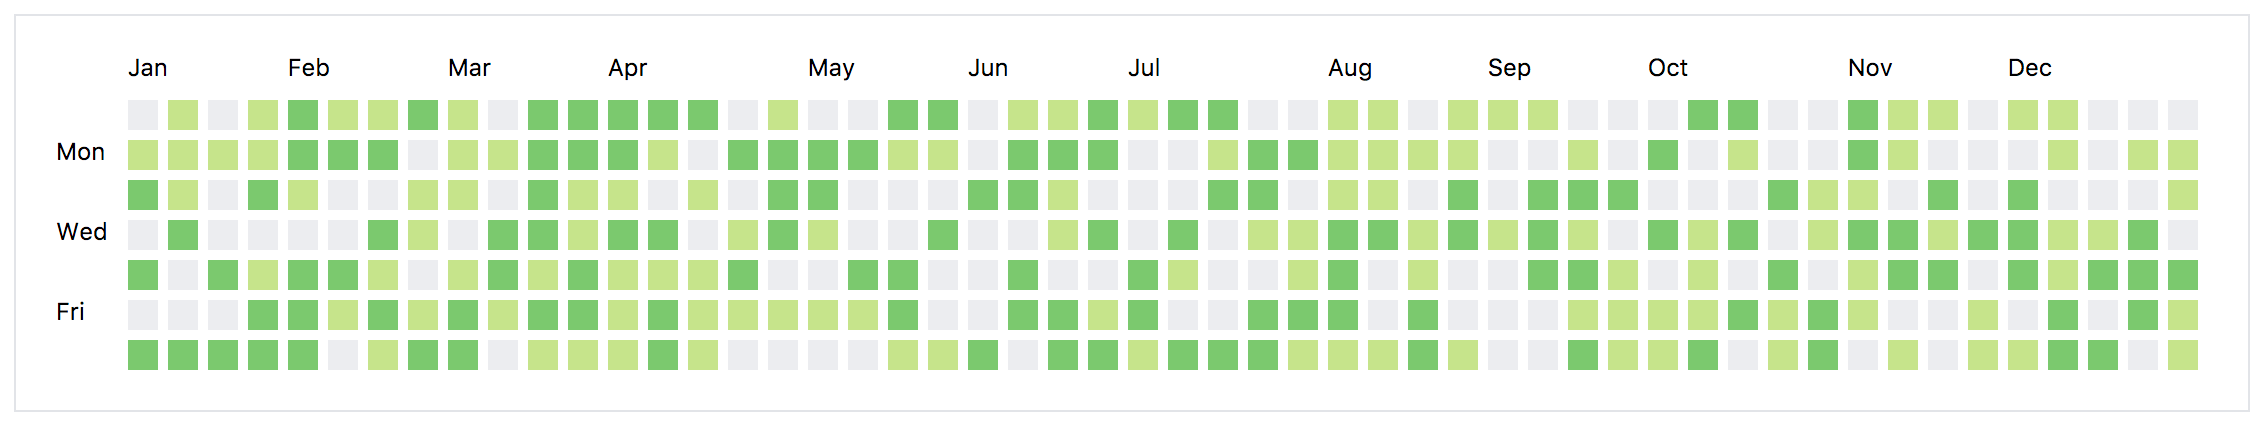 Recreating the GitHub Contribution Graph with CSS Grid